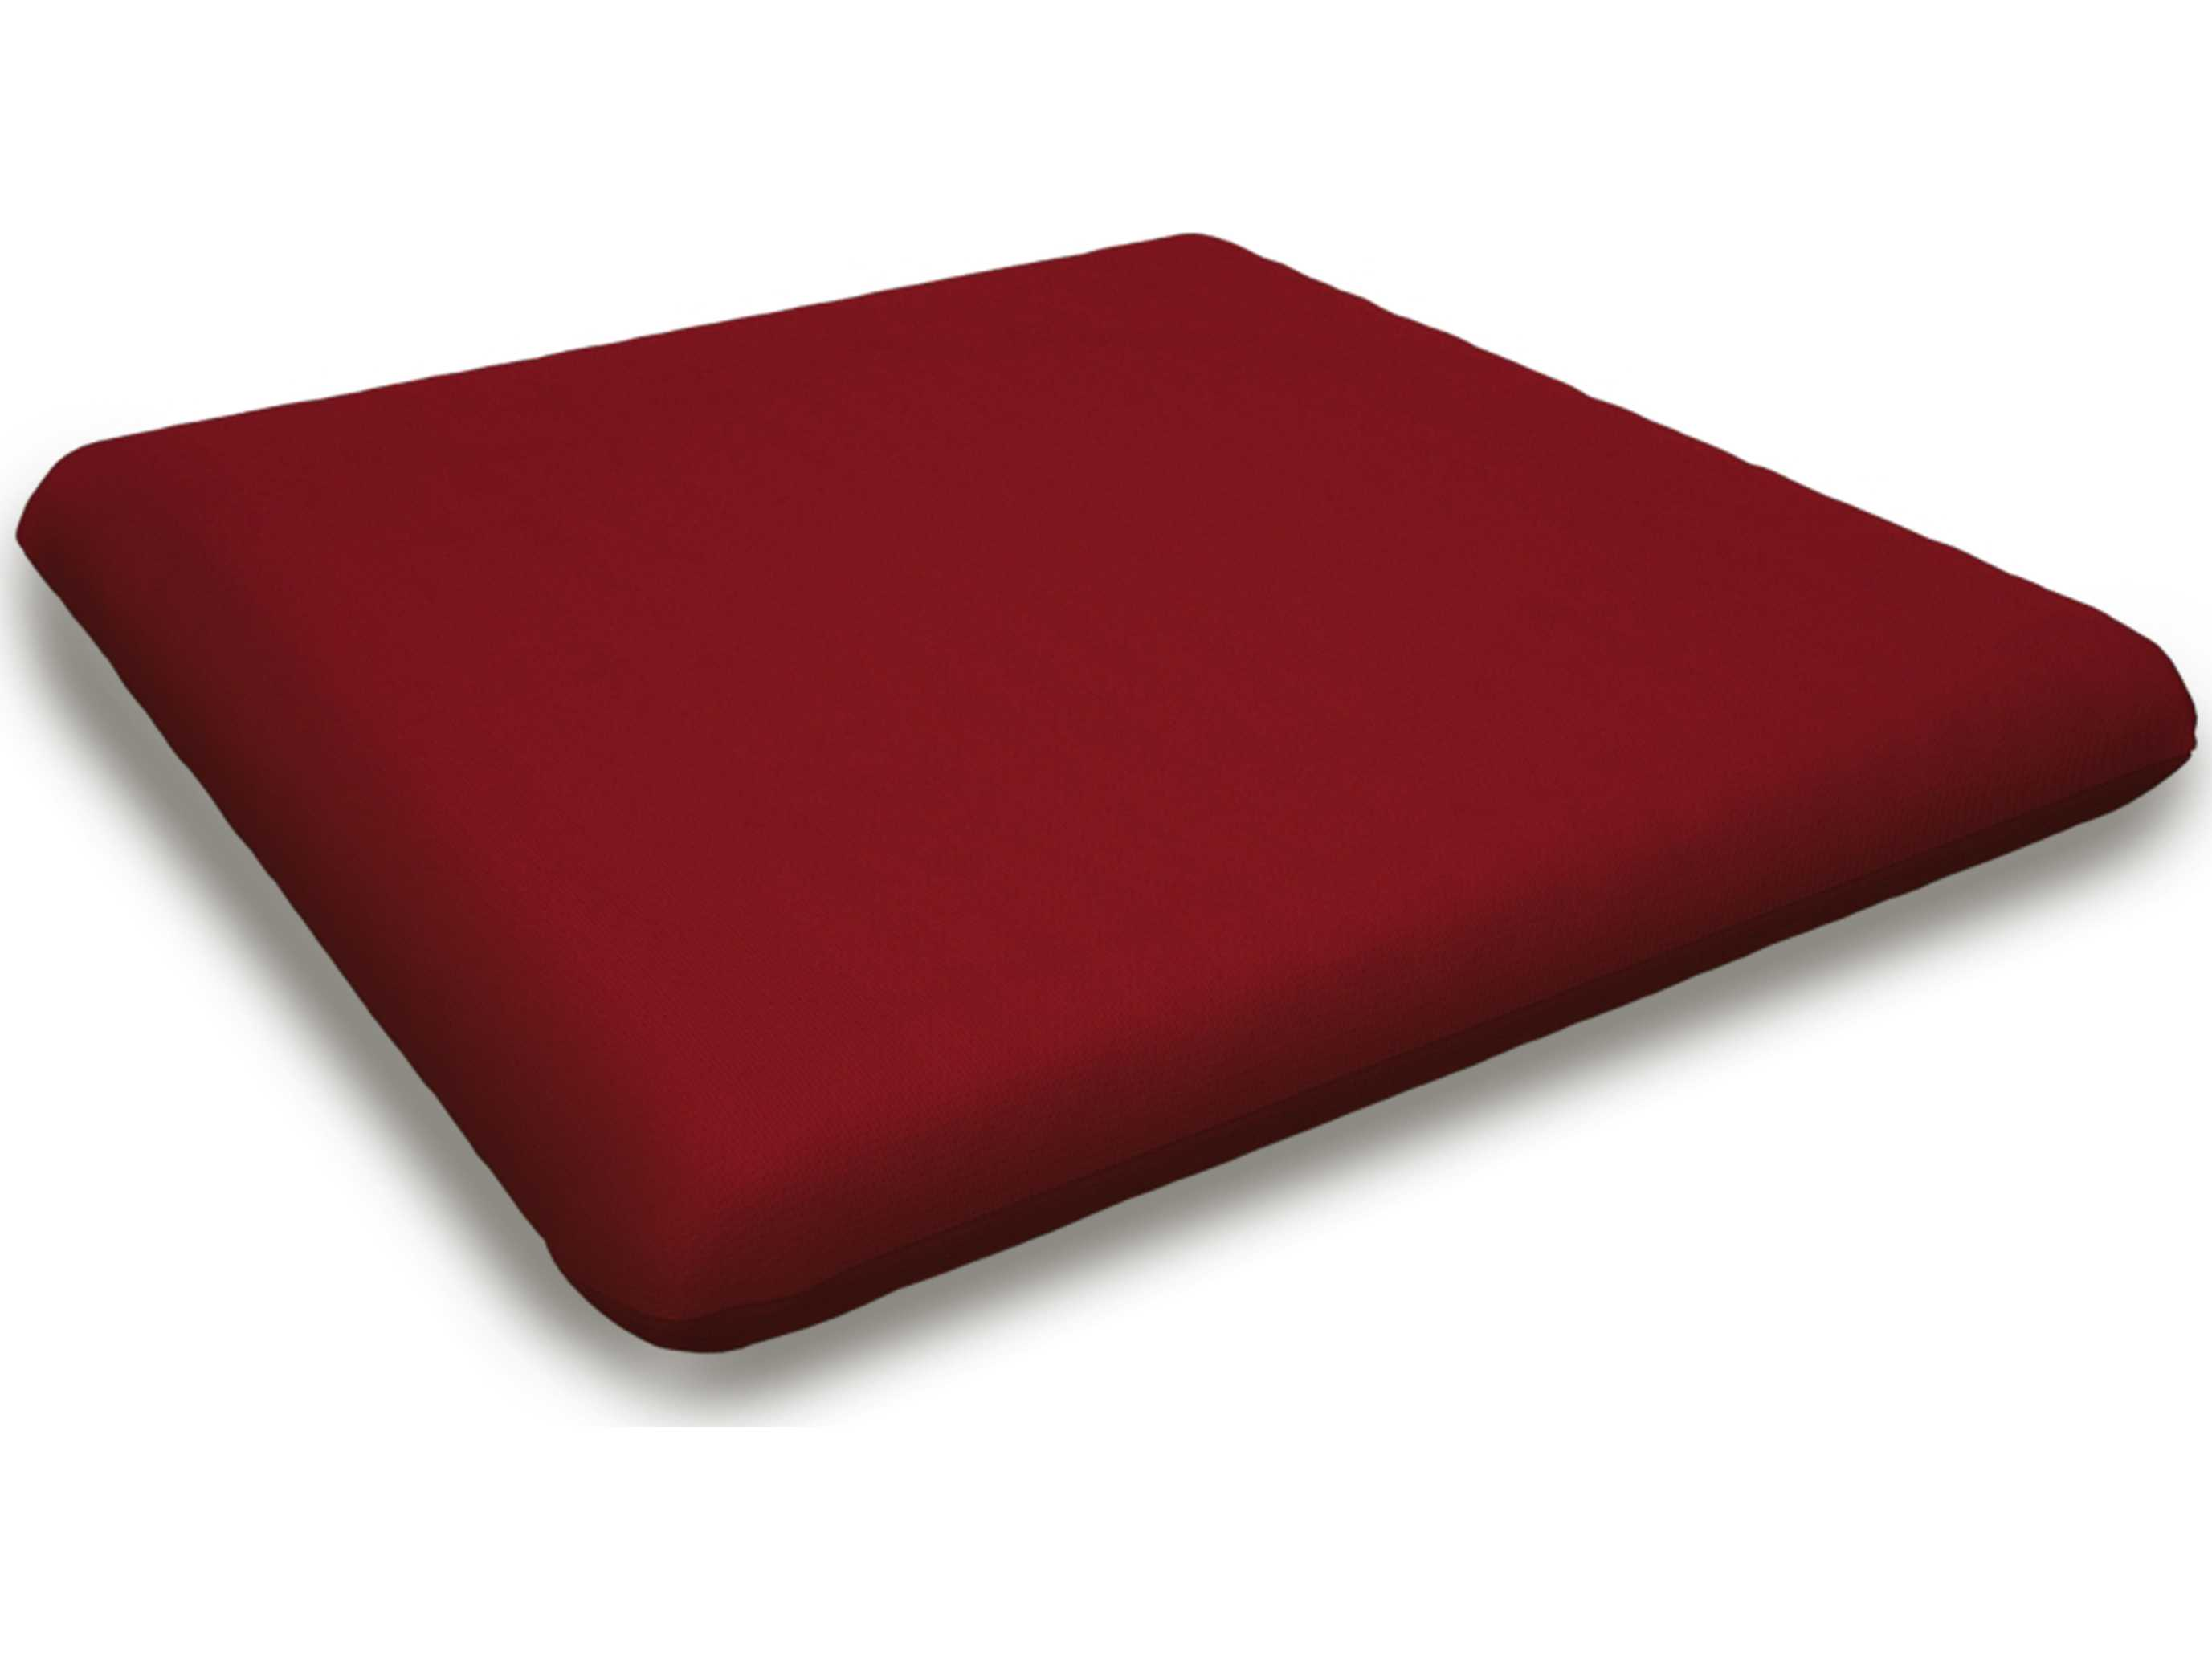 Polywood 174 Euro Replacement Chair Seat Cushion Xpws0001